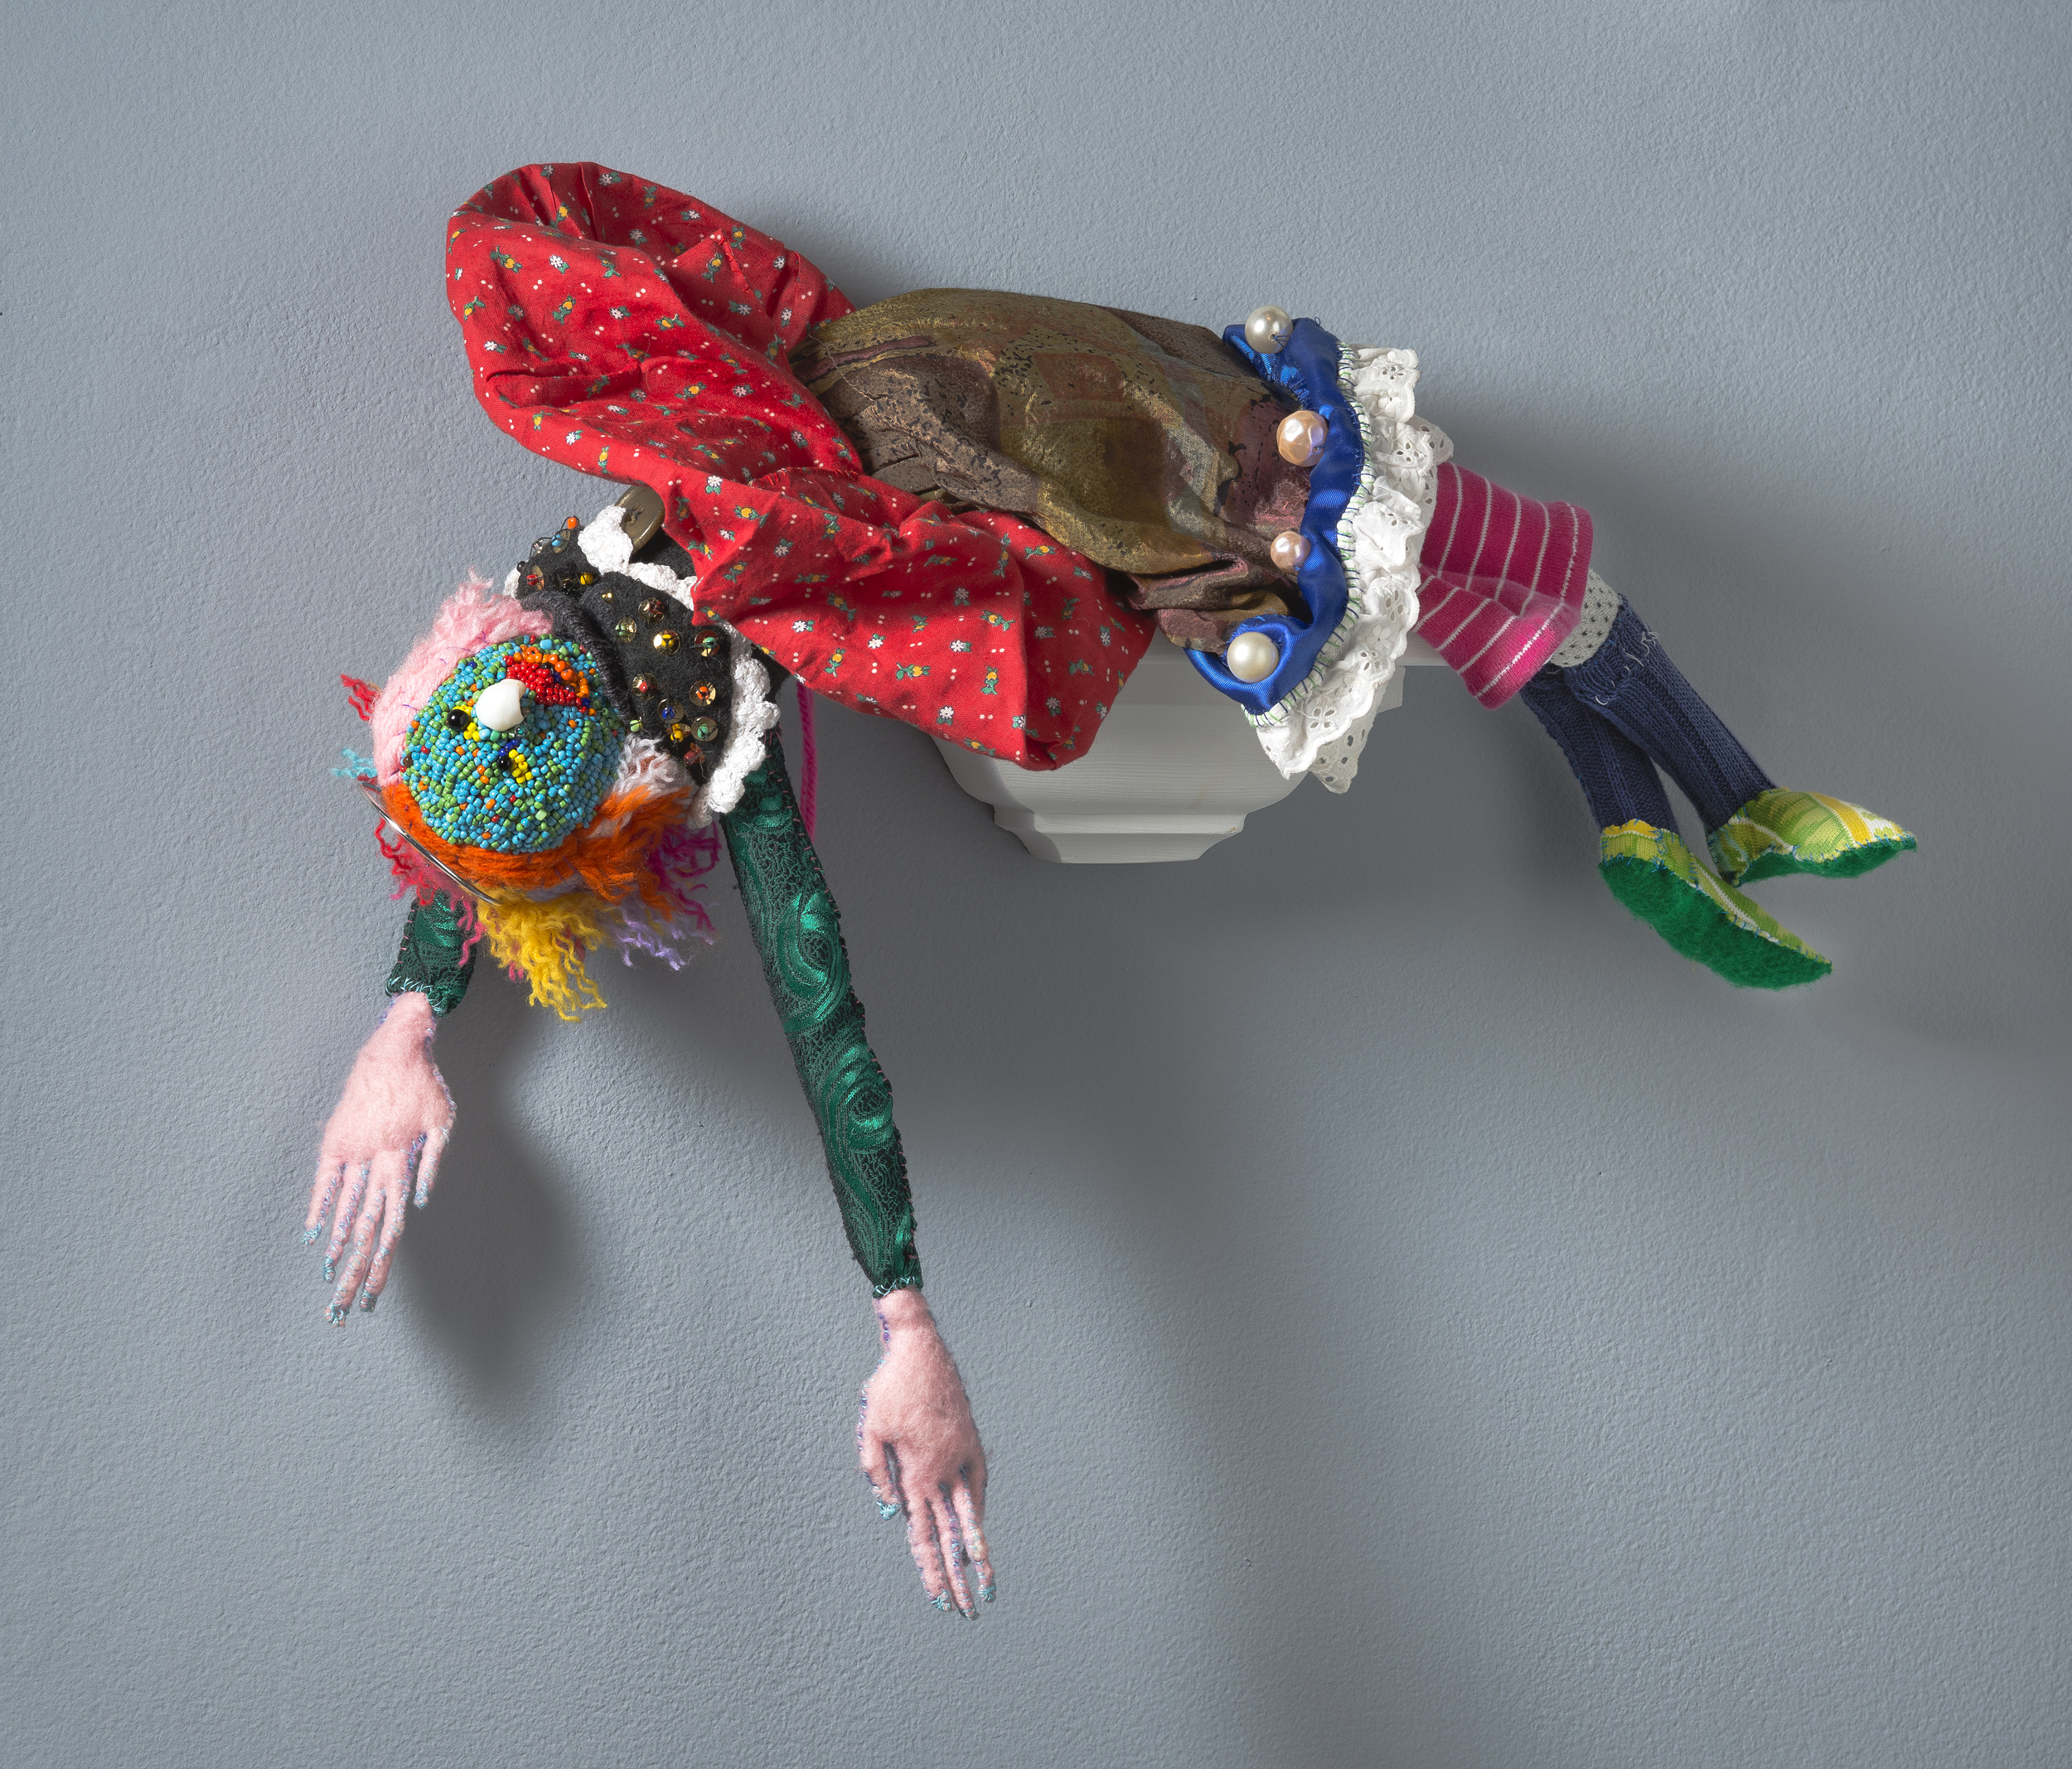 sewn figure, recycled, re-purposed, doll, puppet, sewing, textiles